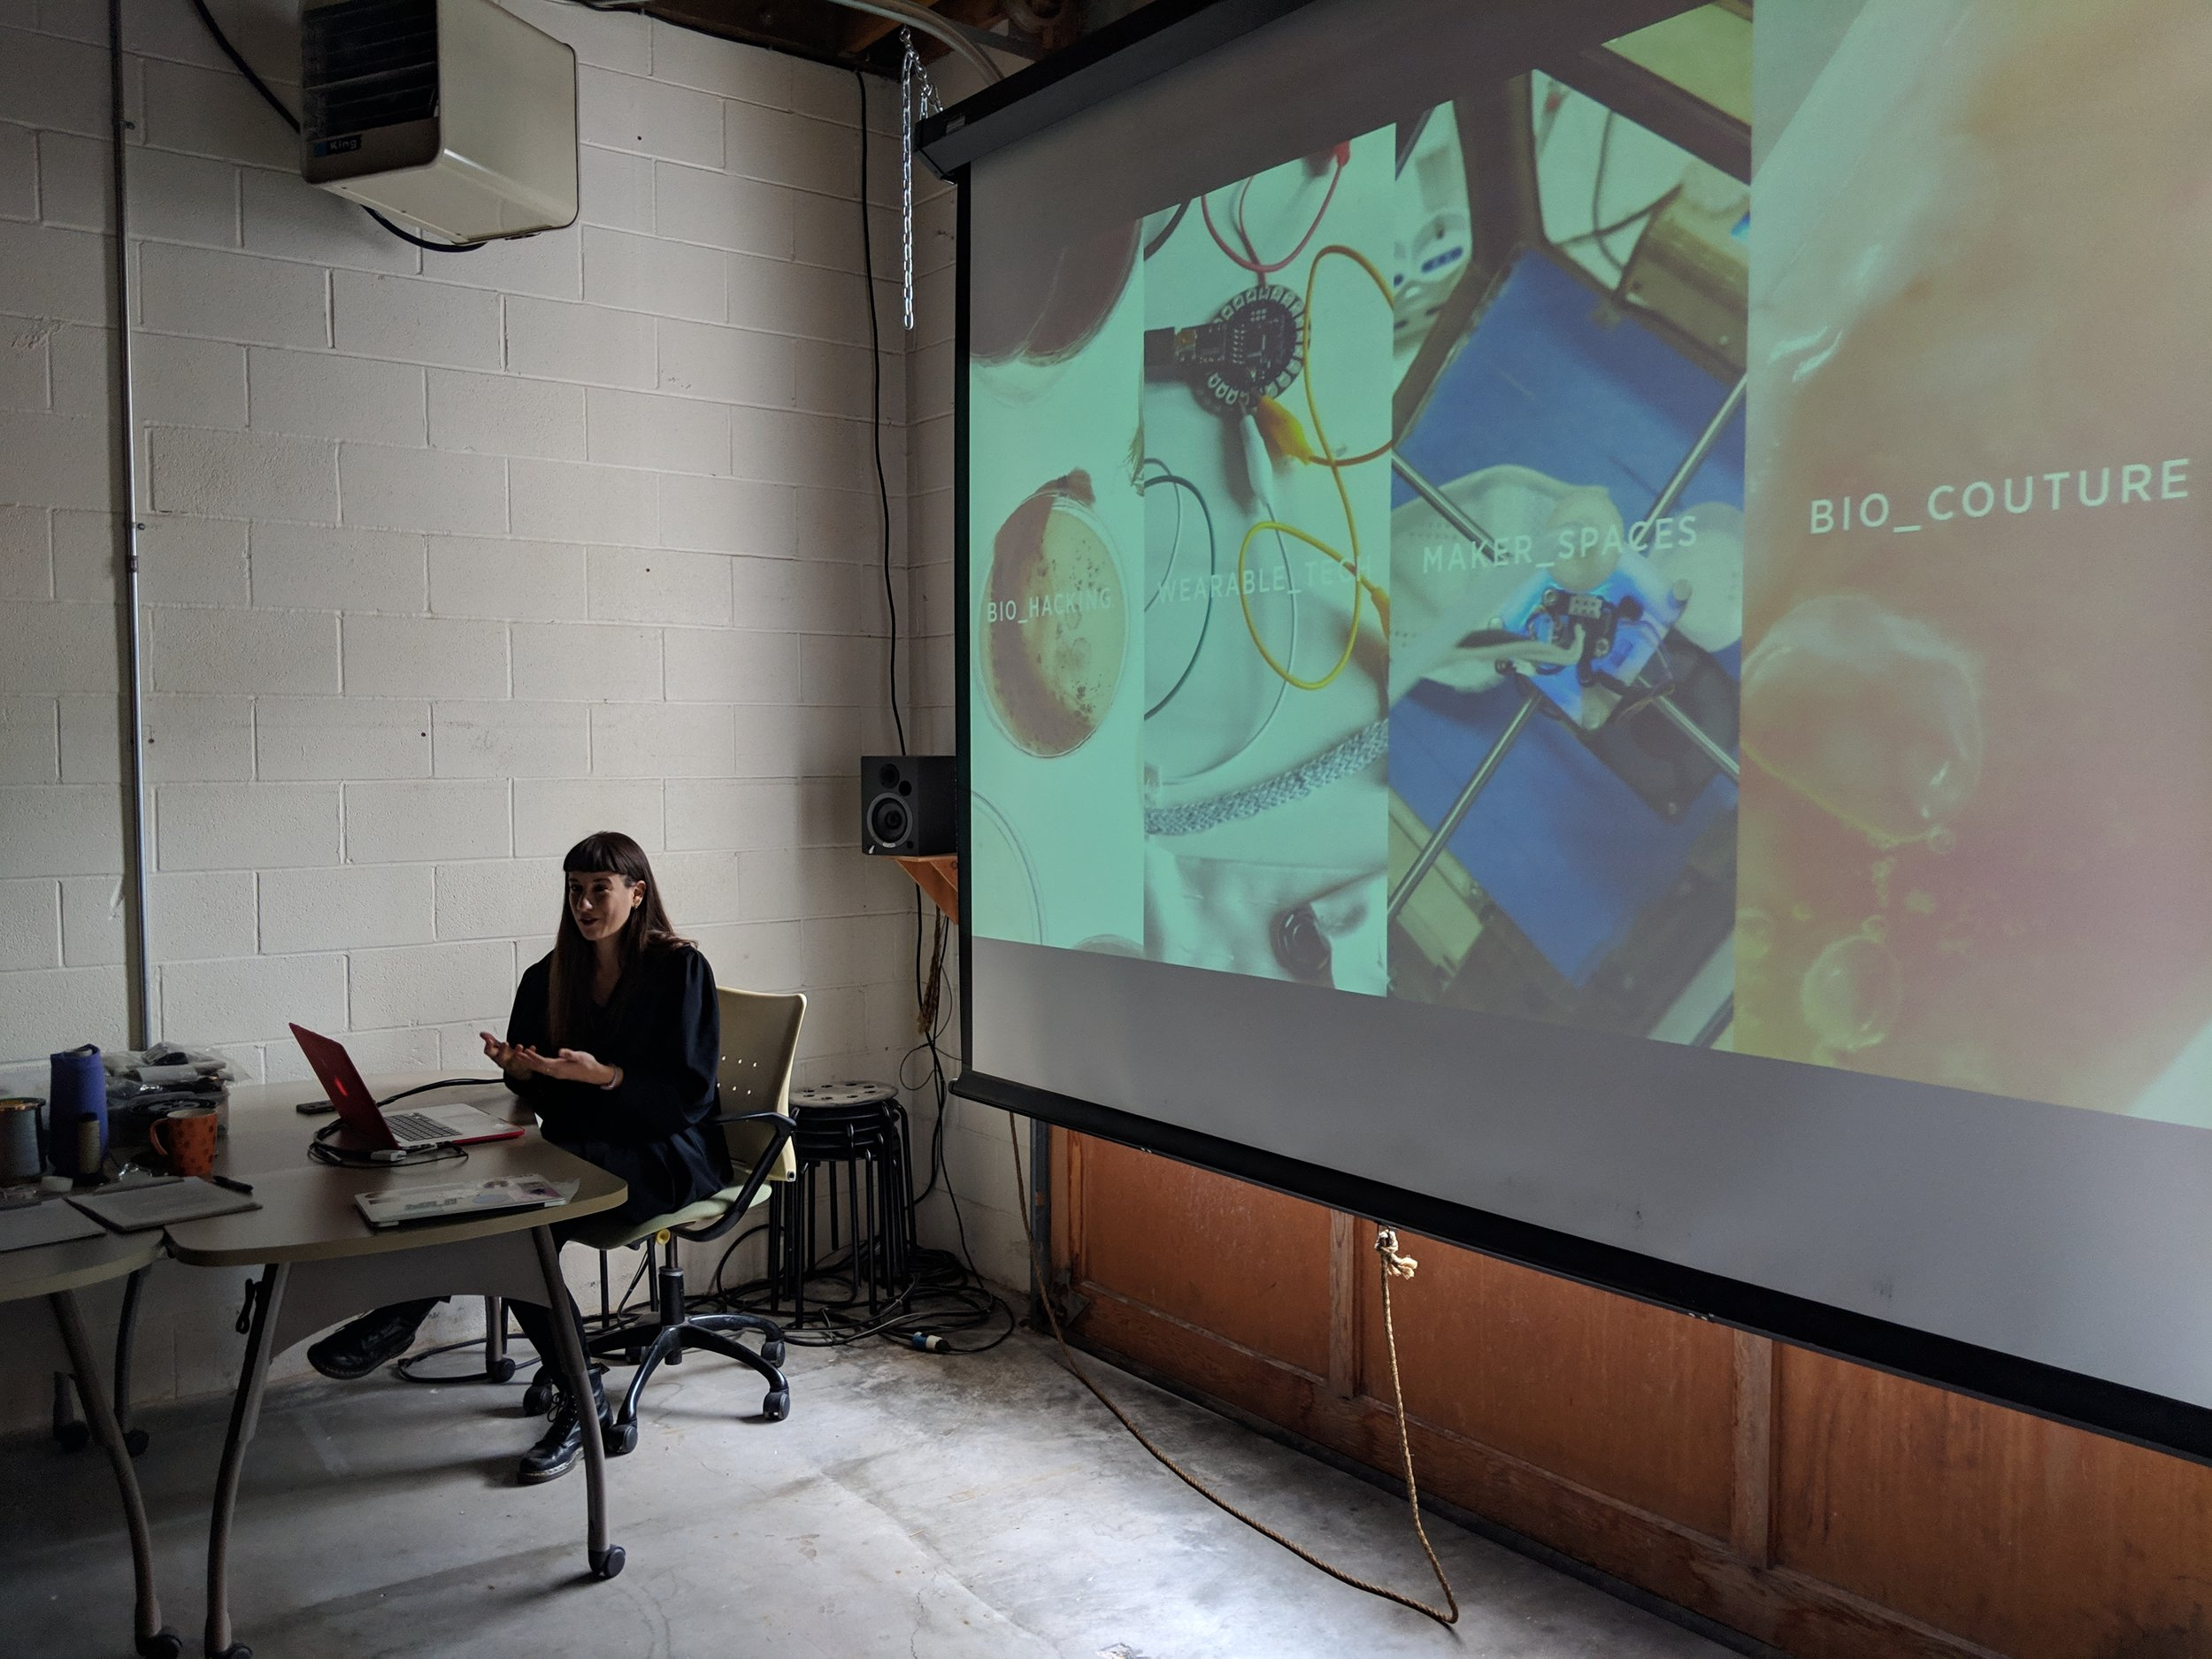 Giulia discusses her experience as a maker and the different fields she has been engaged with the past five years of her career.